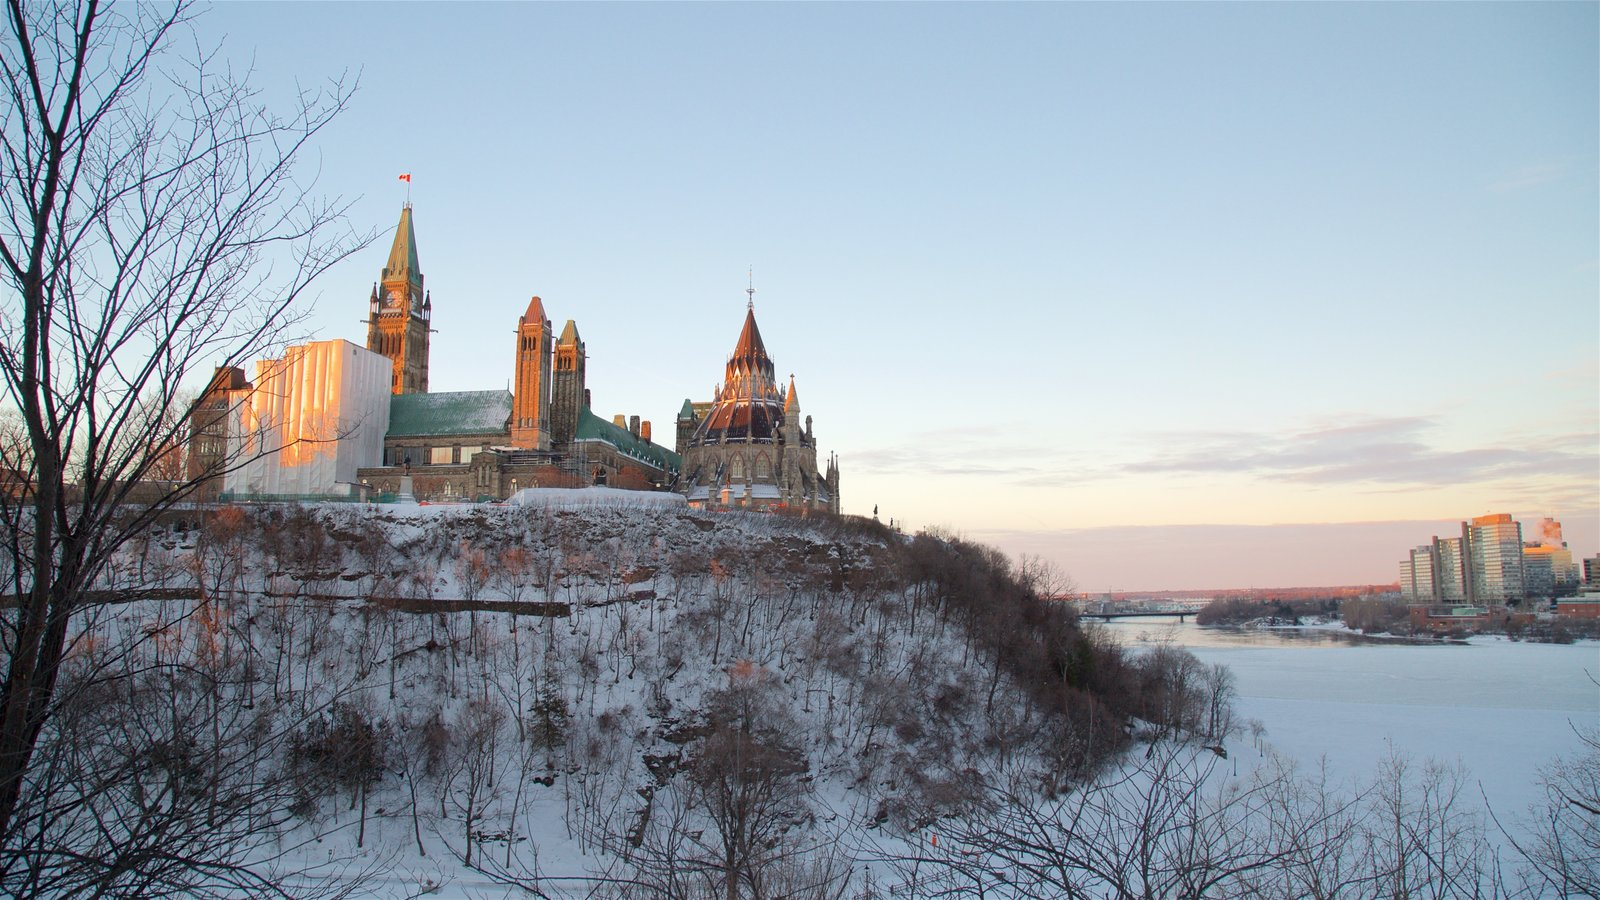 Parliament Hill showing snow and chateau or palace